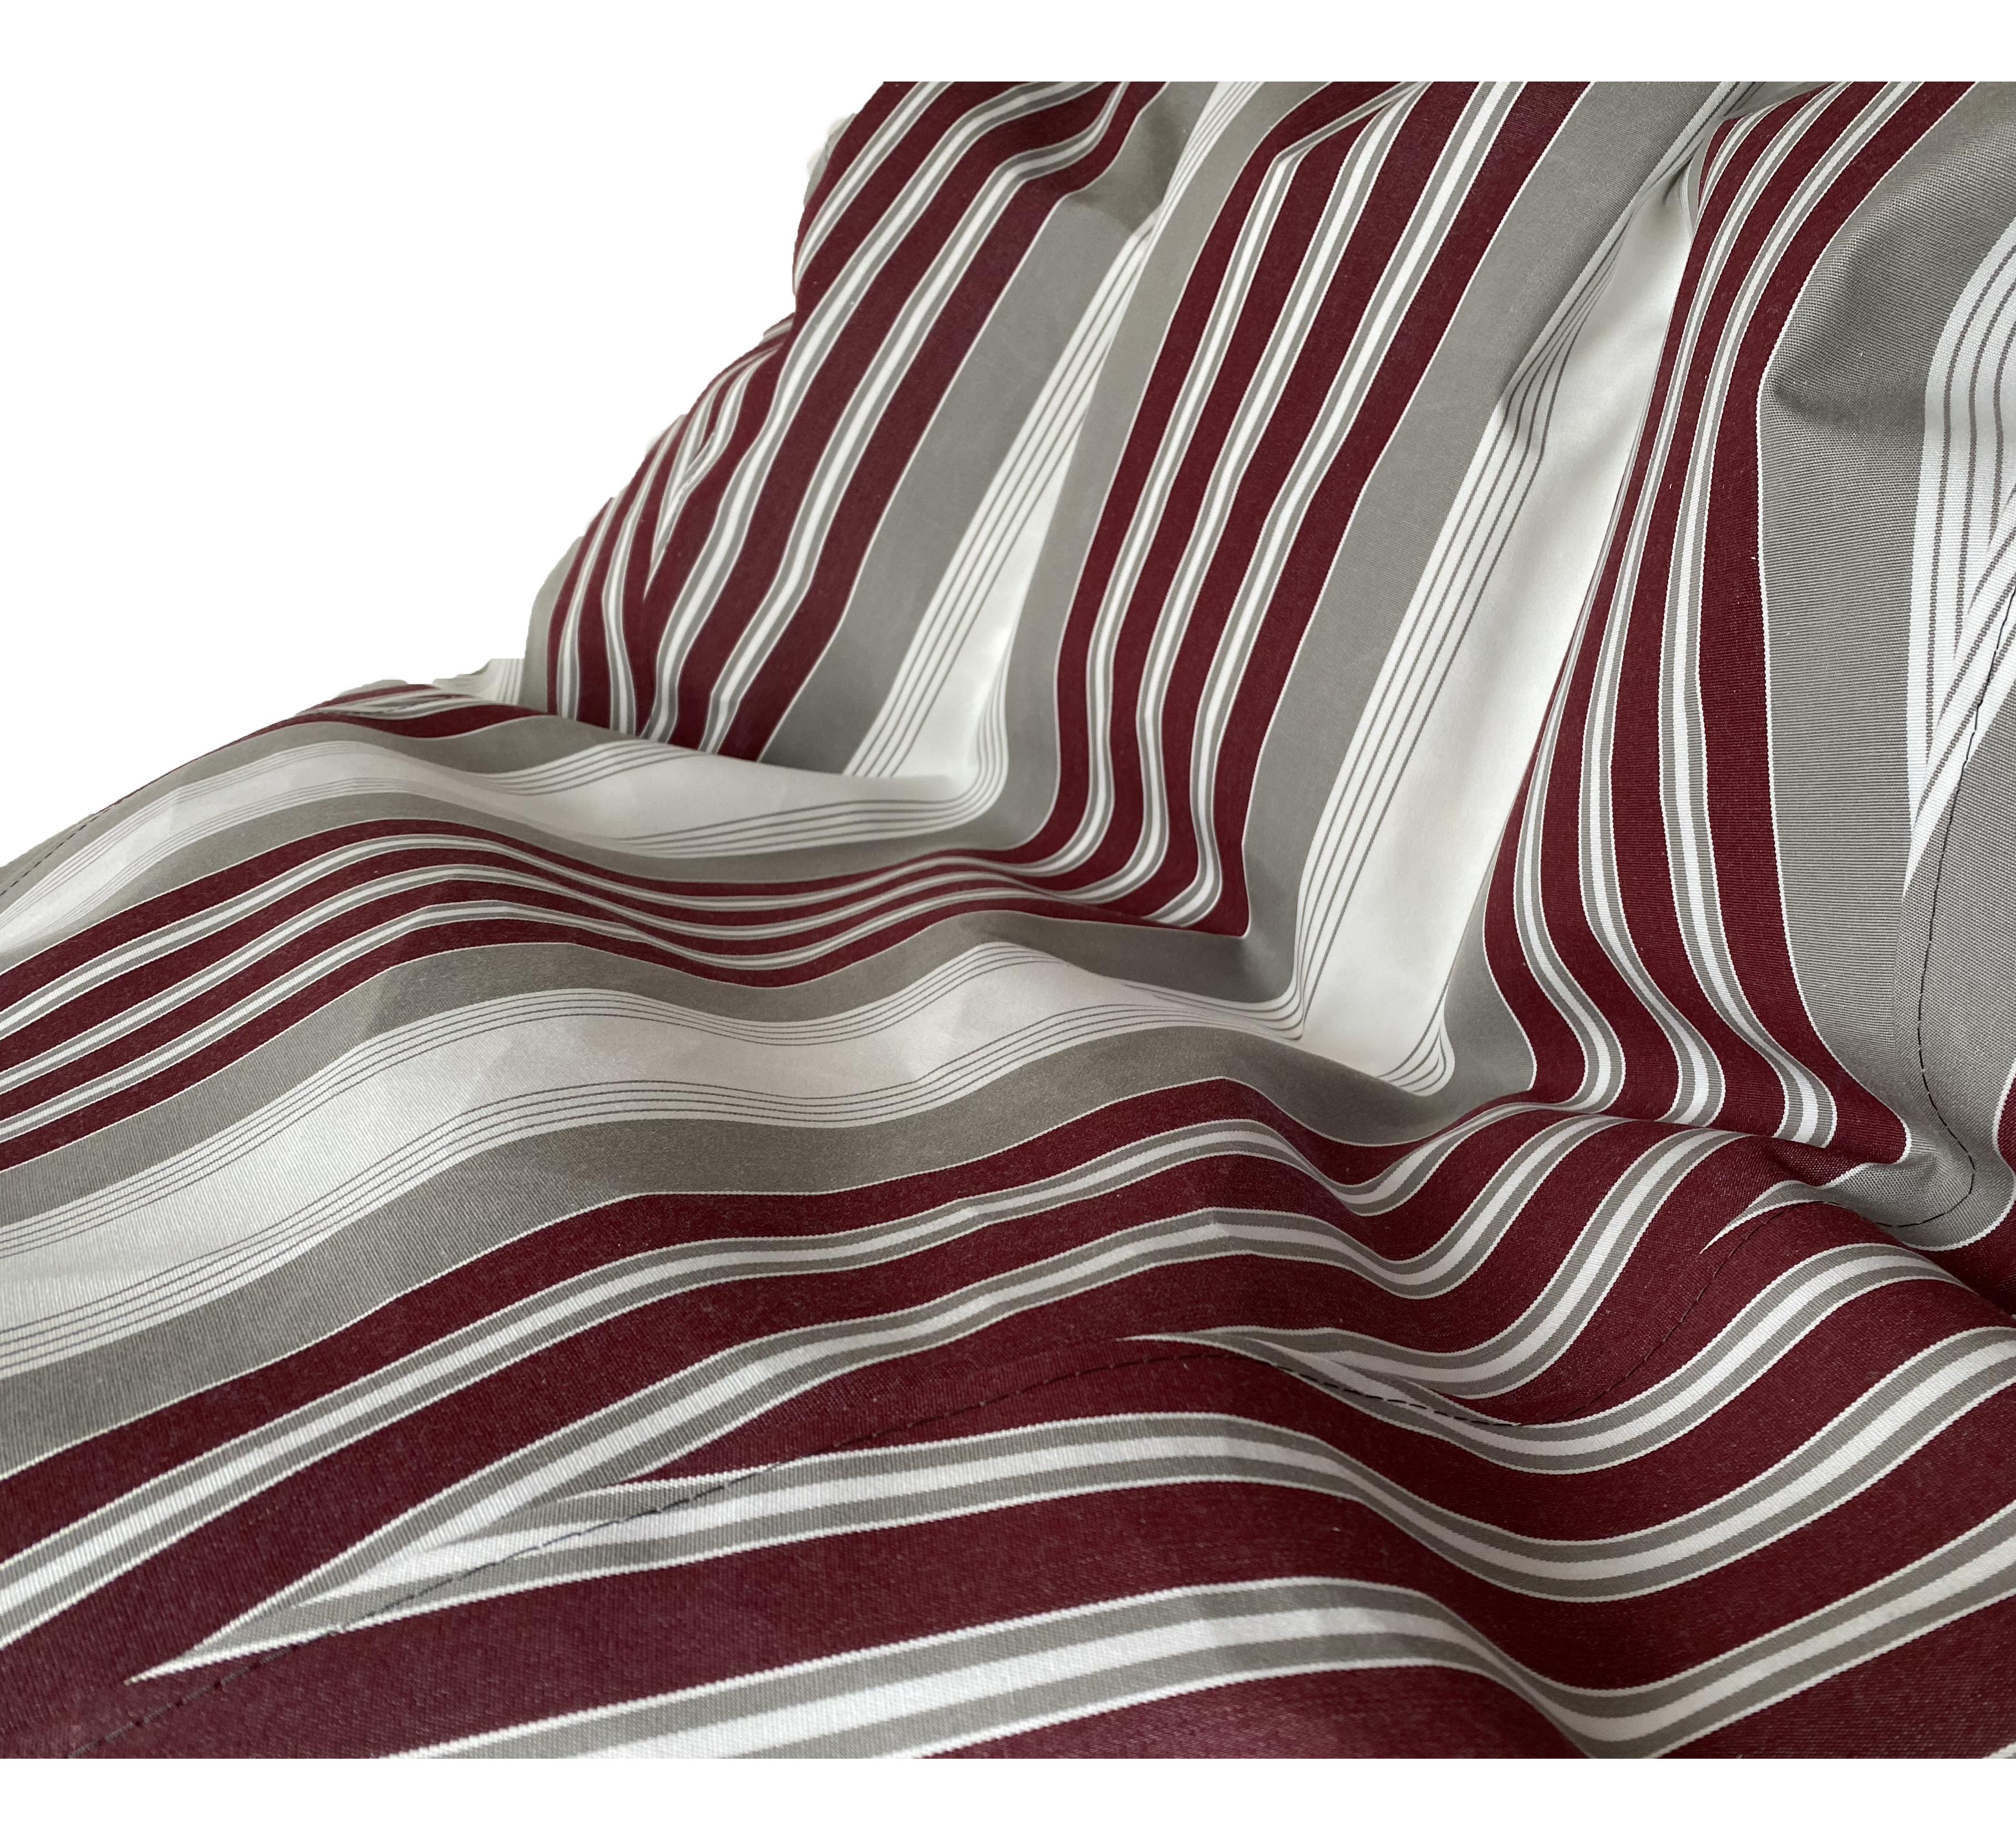 Sunbrella Outdoor Deluxe Vintage Edition Bean Bag In Clay and Off White with Burgandy Stripe